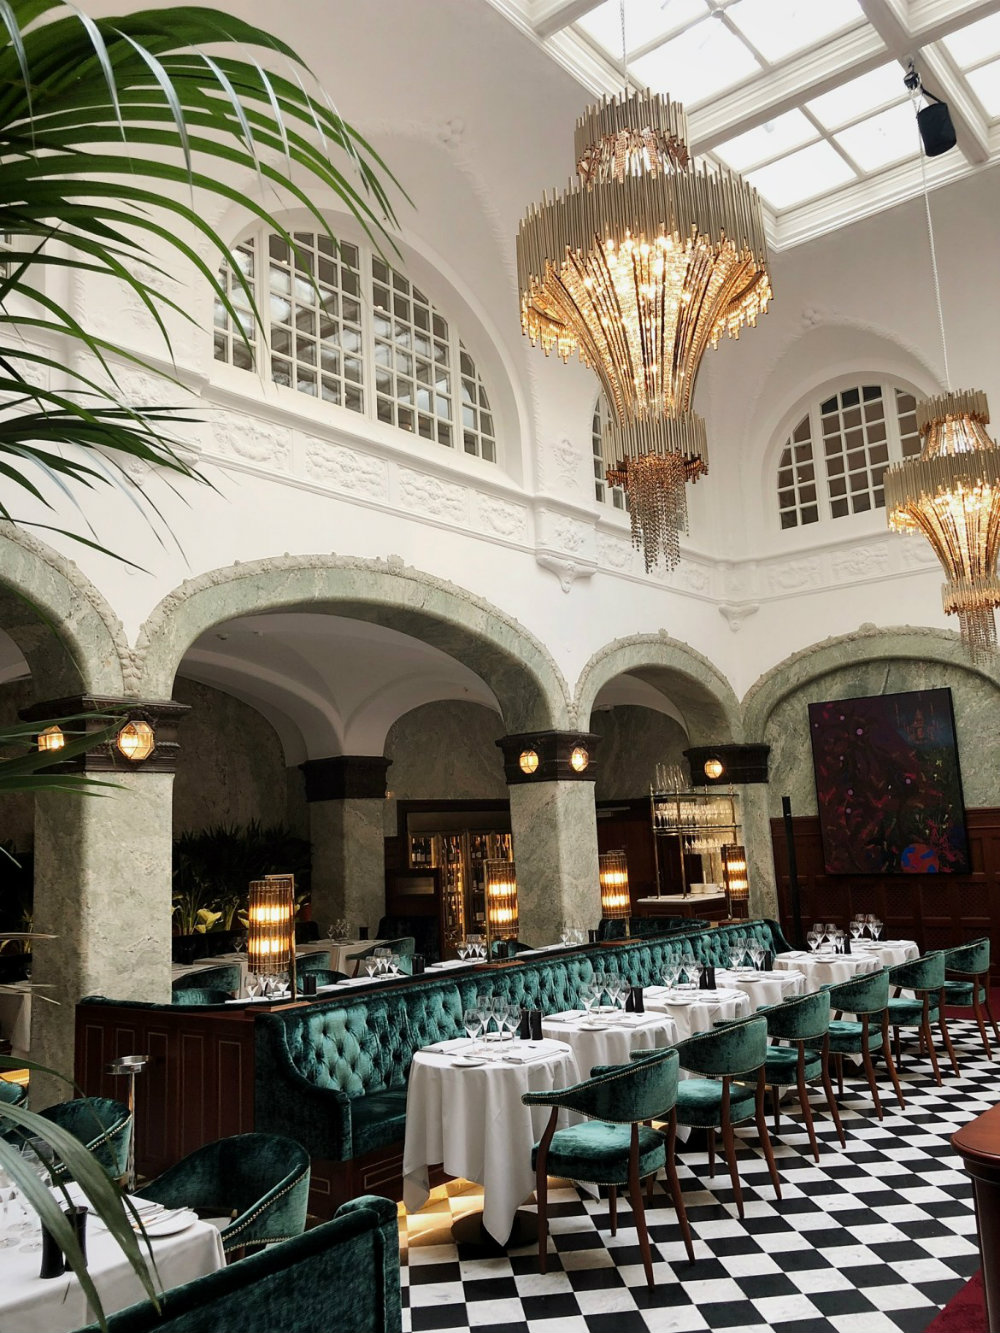 Bank Hotel: Be Inspired By These Luxury Chandeliers